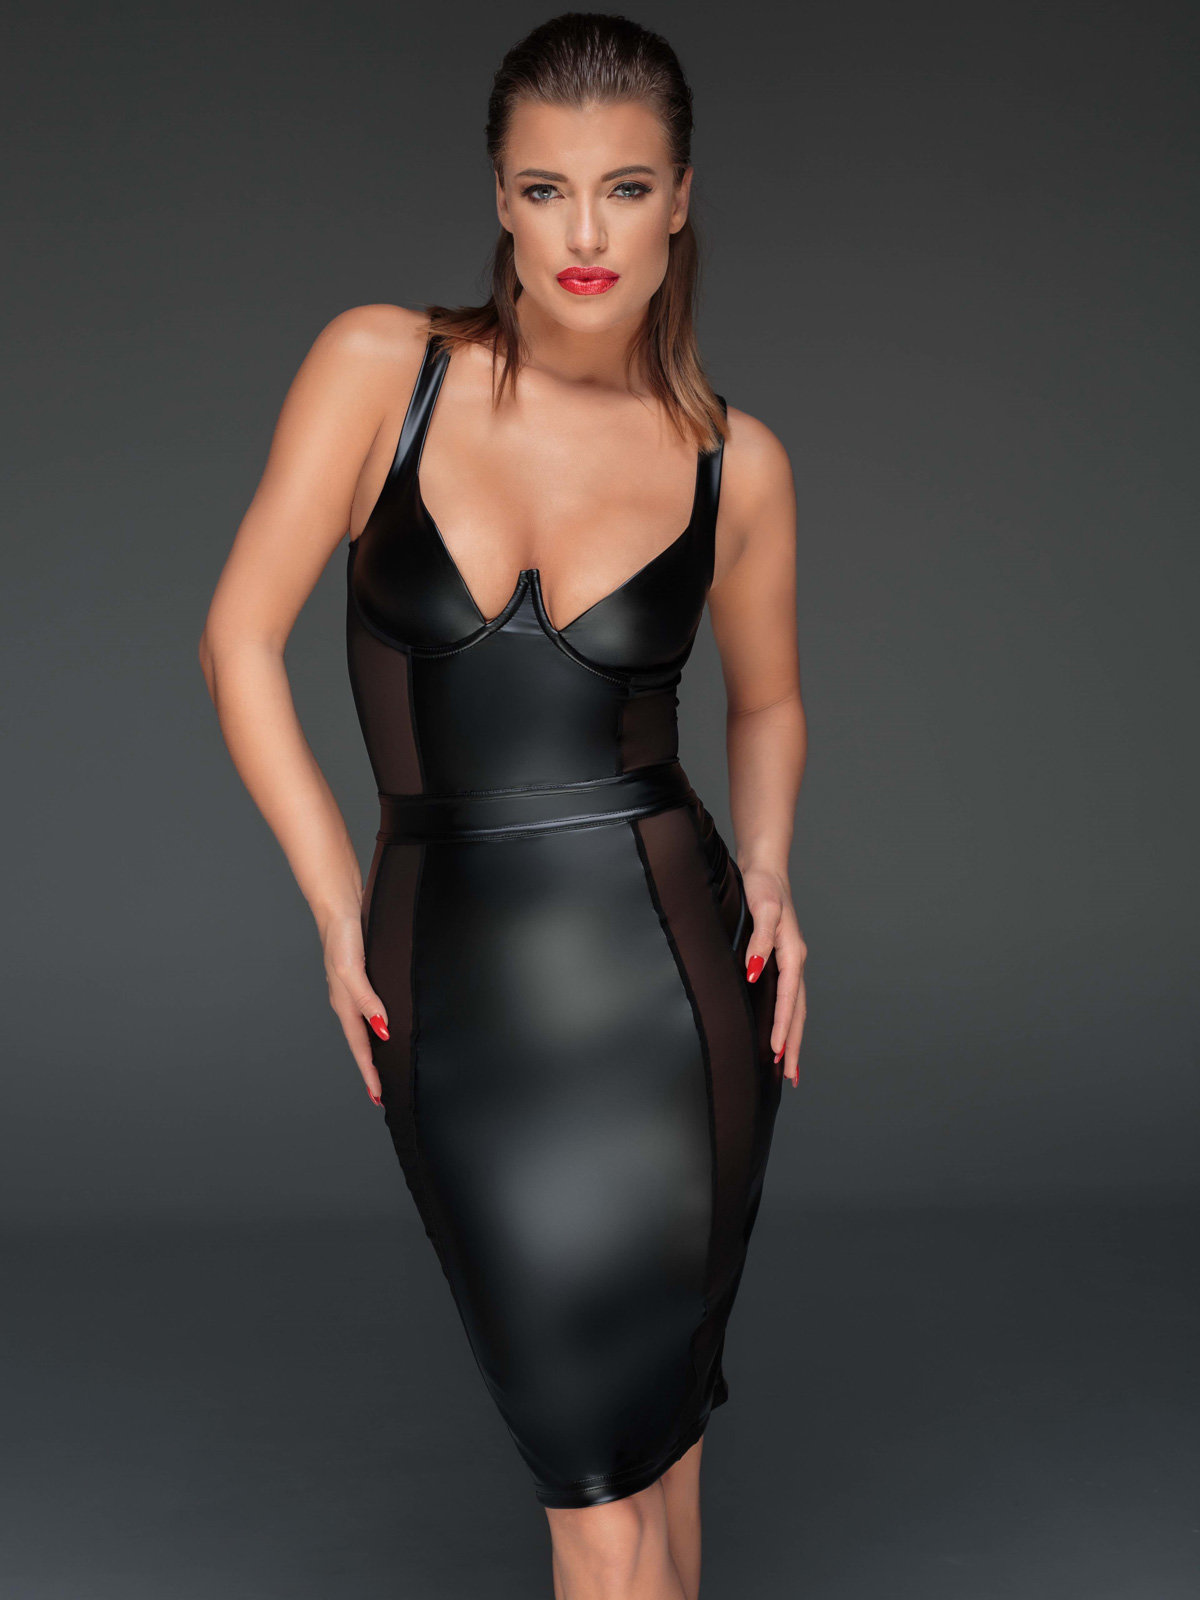 Noir Handmade Chemise Powerwetlook pencil dress 2 Negru